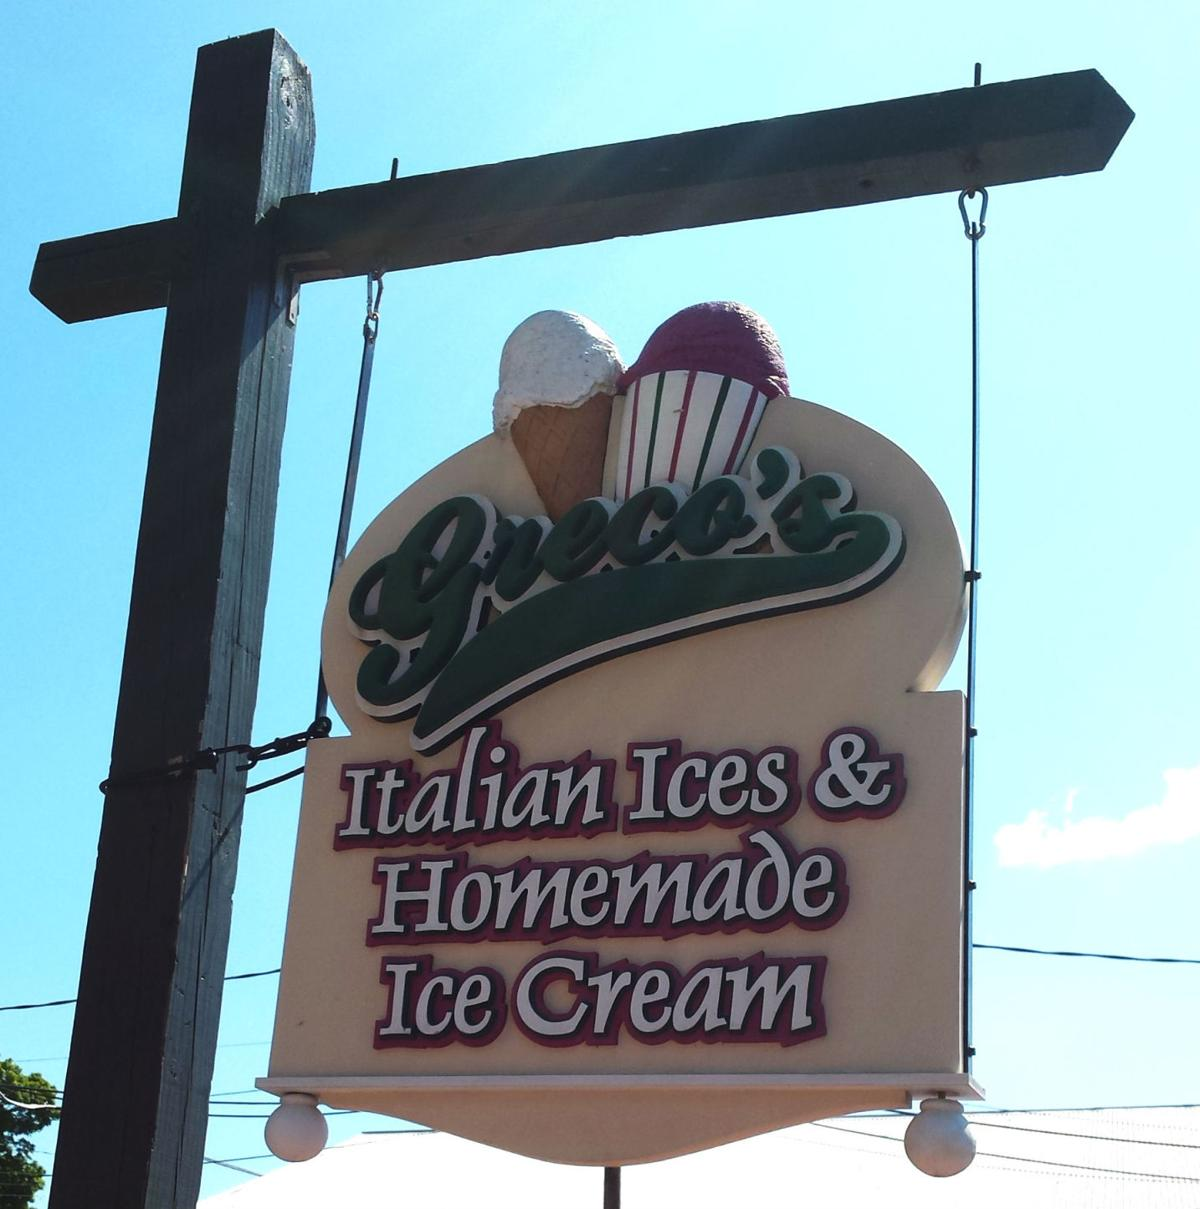 Greco's ice cream sign in Lititz (copy)